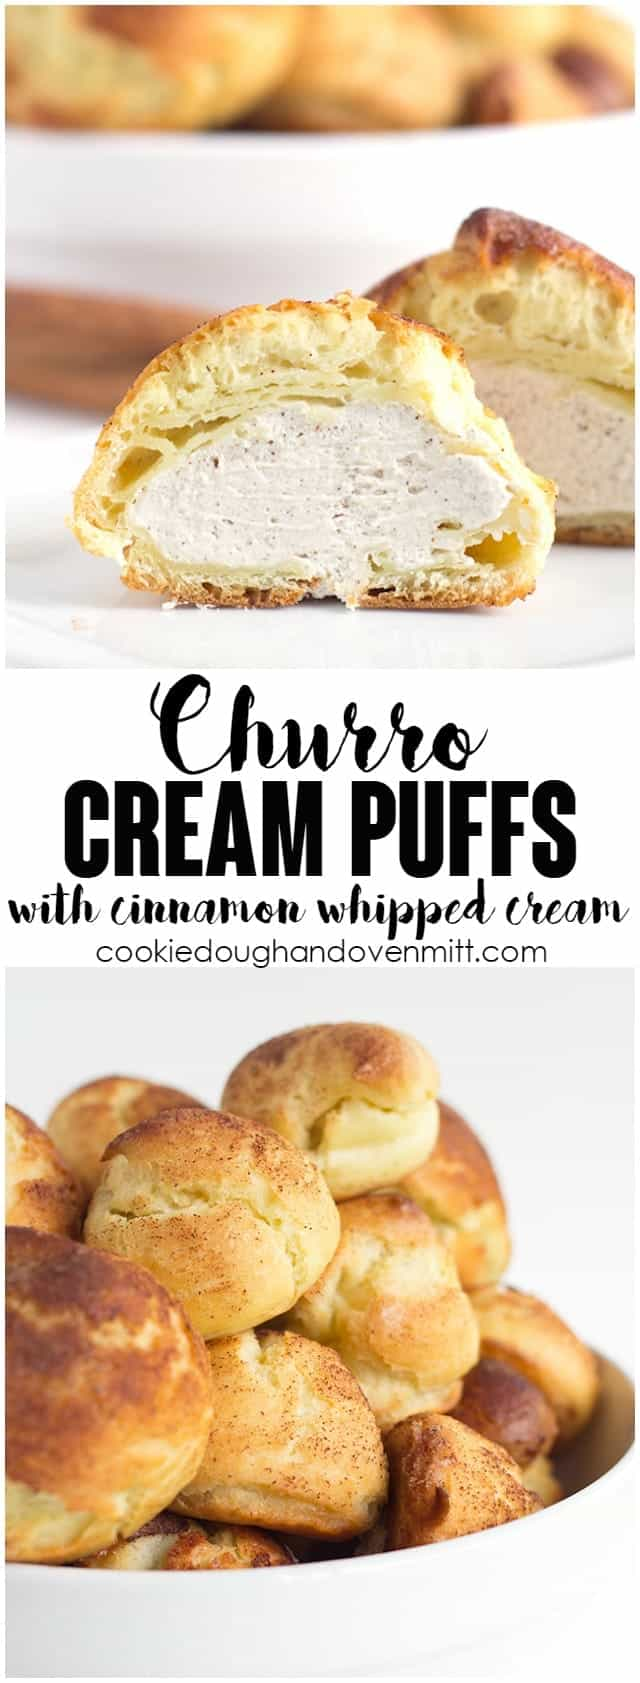 Churro Cream Puffs - easy cream puffs topped with cinnamon and sugar and filled with a cinnamon whipped cream.